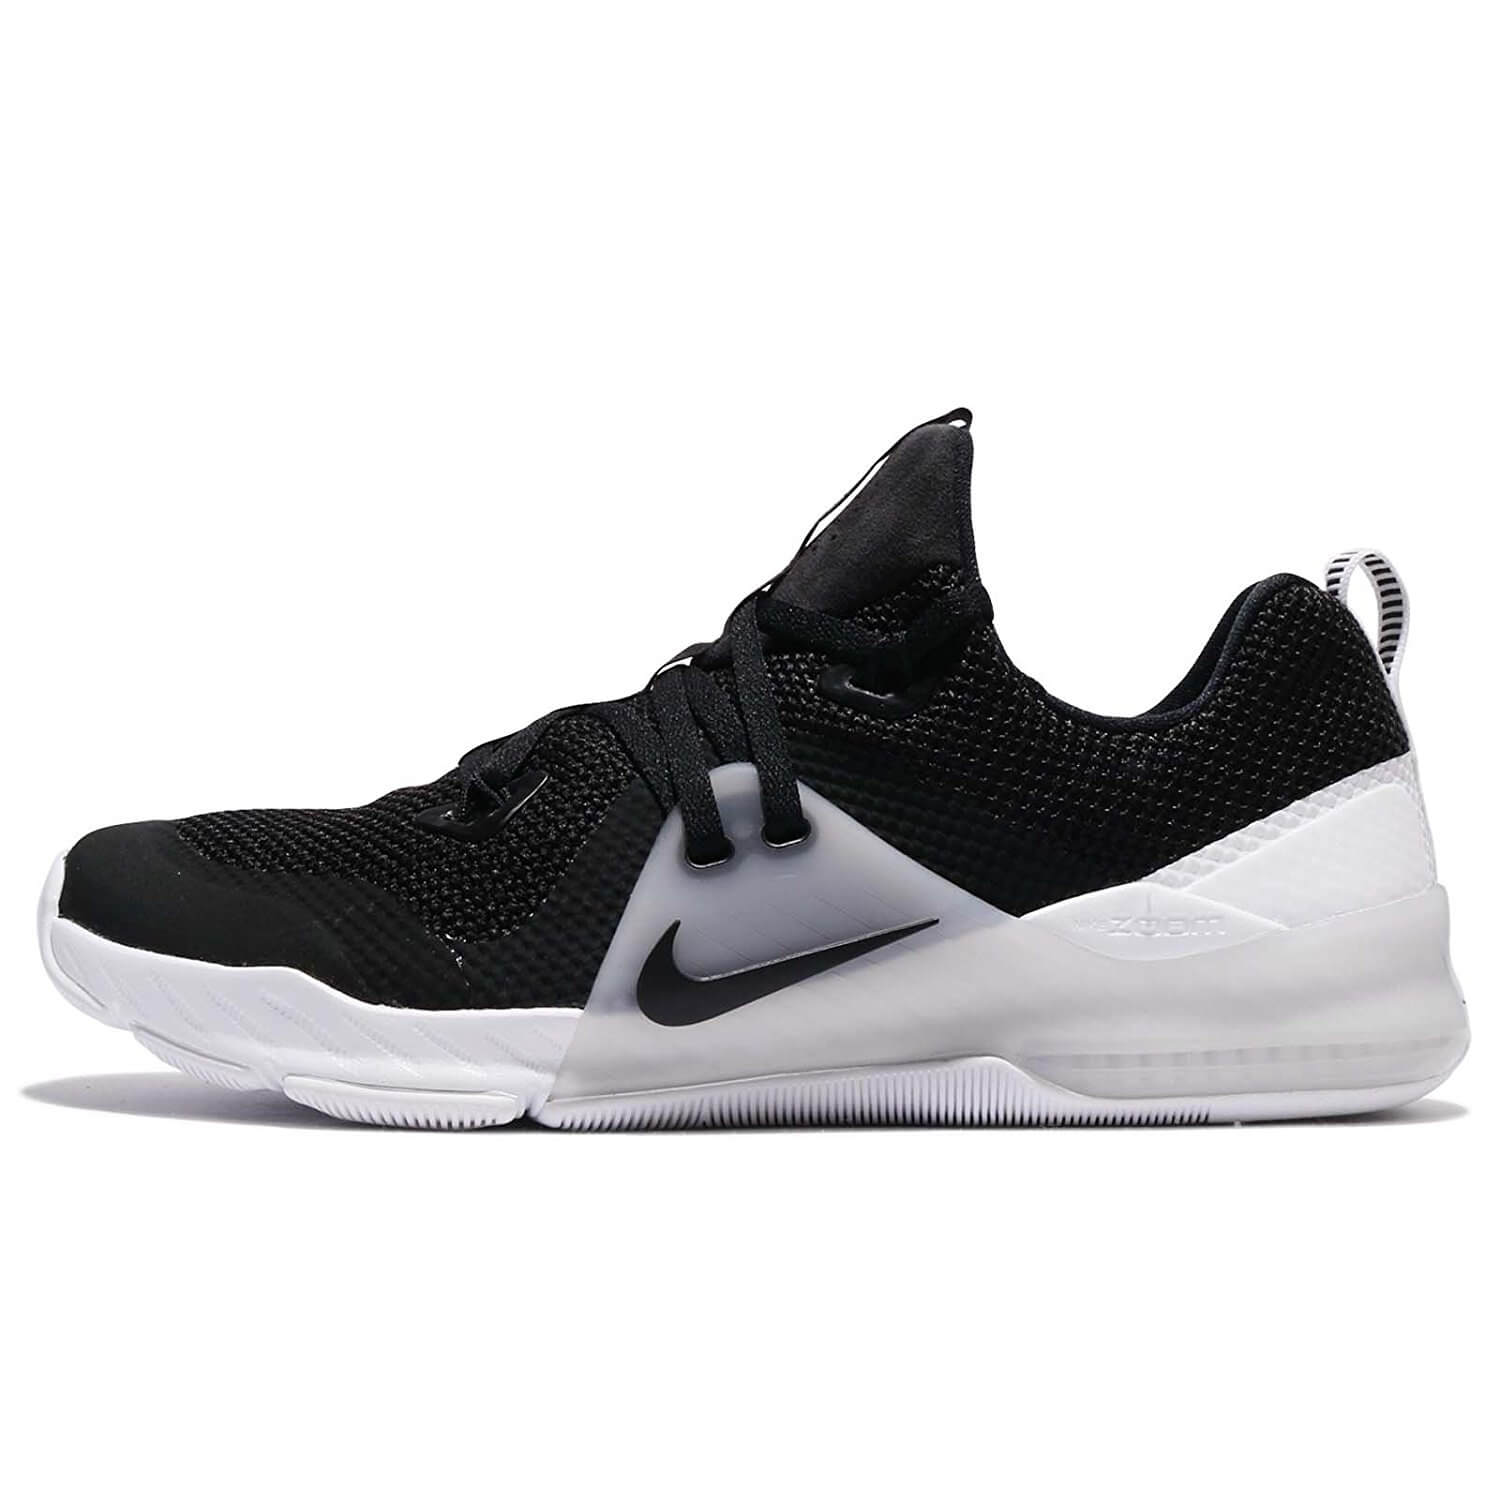 aafb97f8ec35 Nike Zoom Train Command - To Buy or Not in May 2019